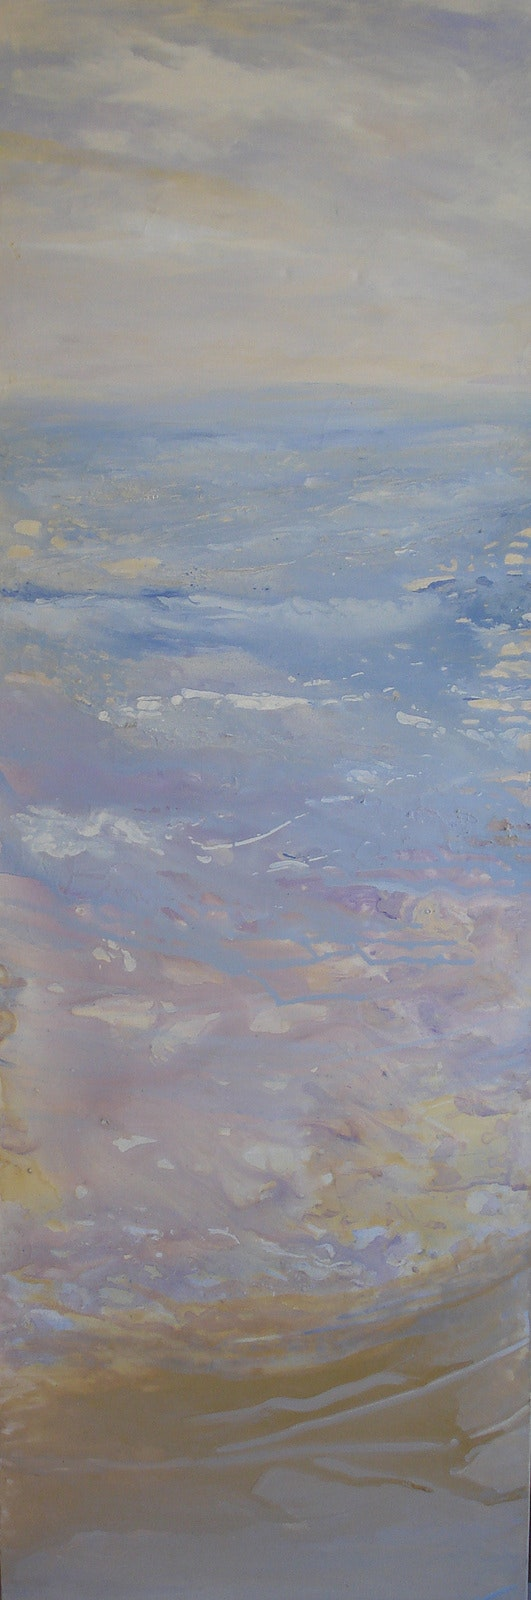 Tranquil Waters - Mixed Medium. Victoria Eyre Victoria Eyre